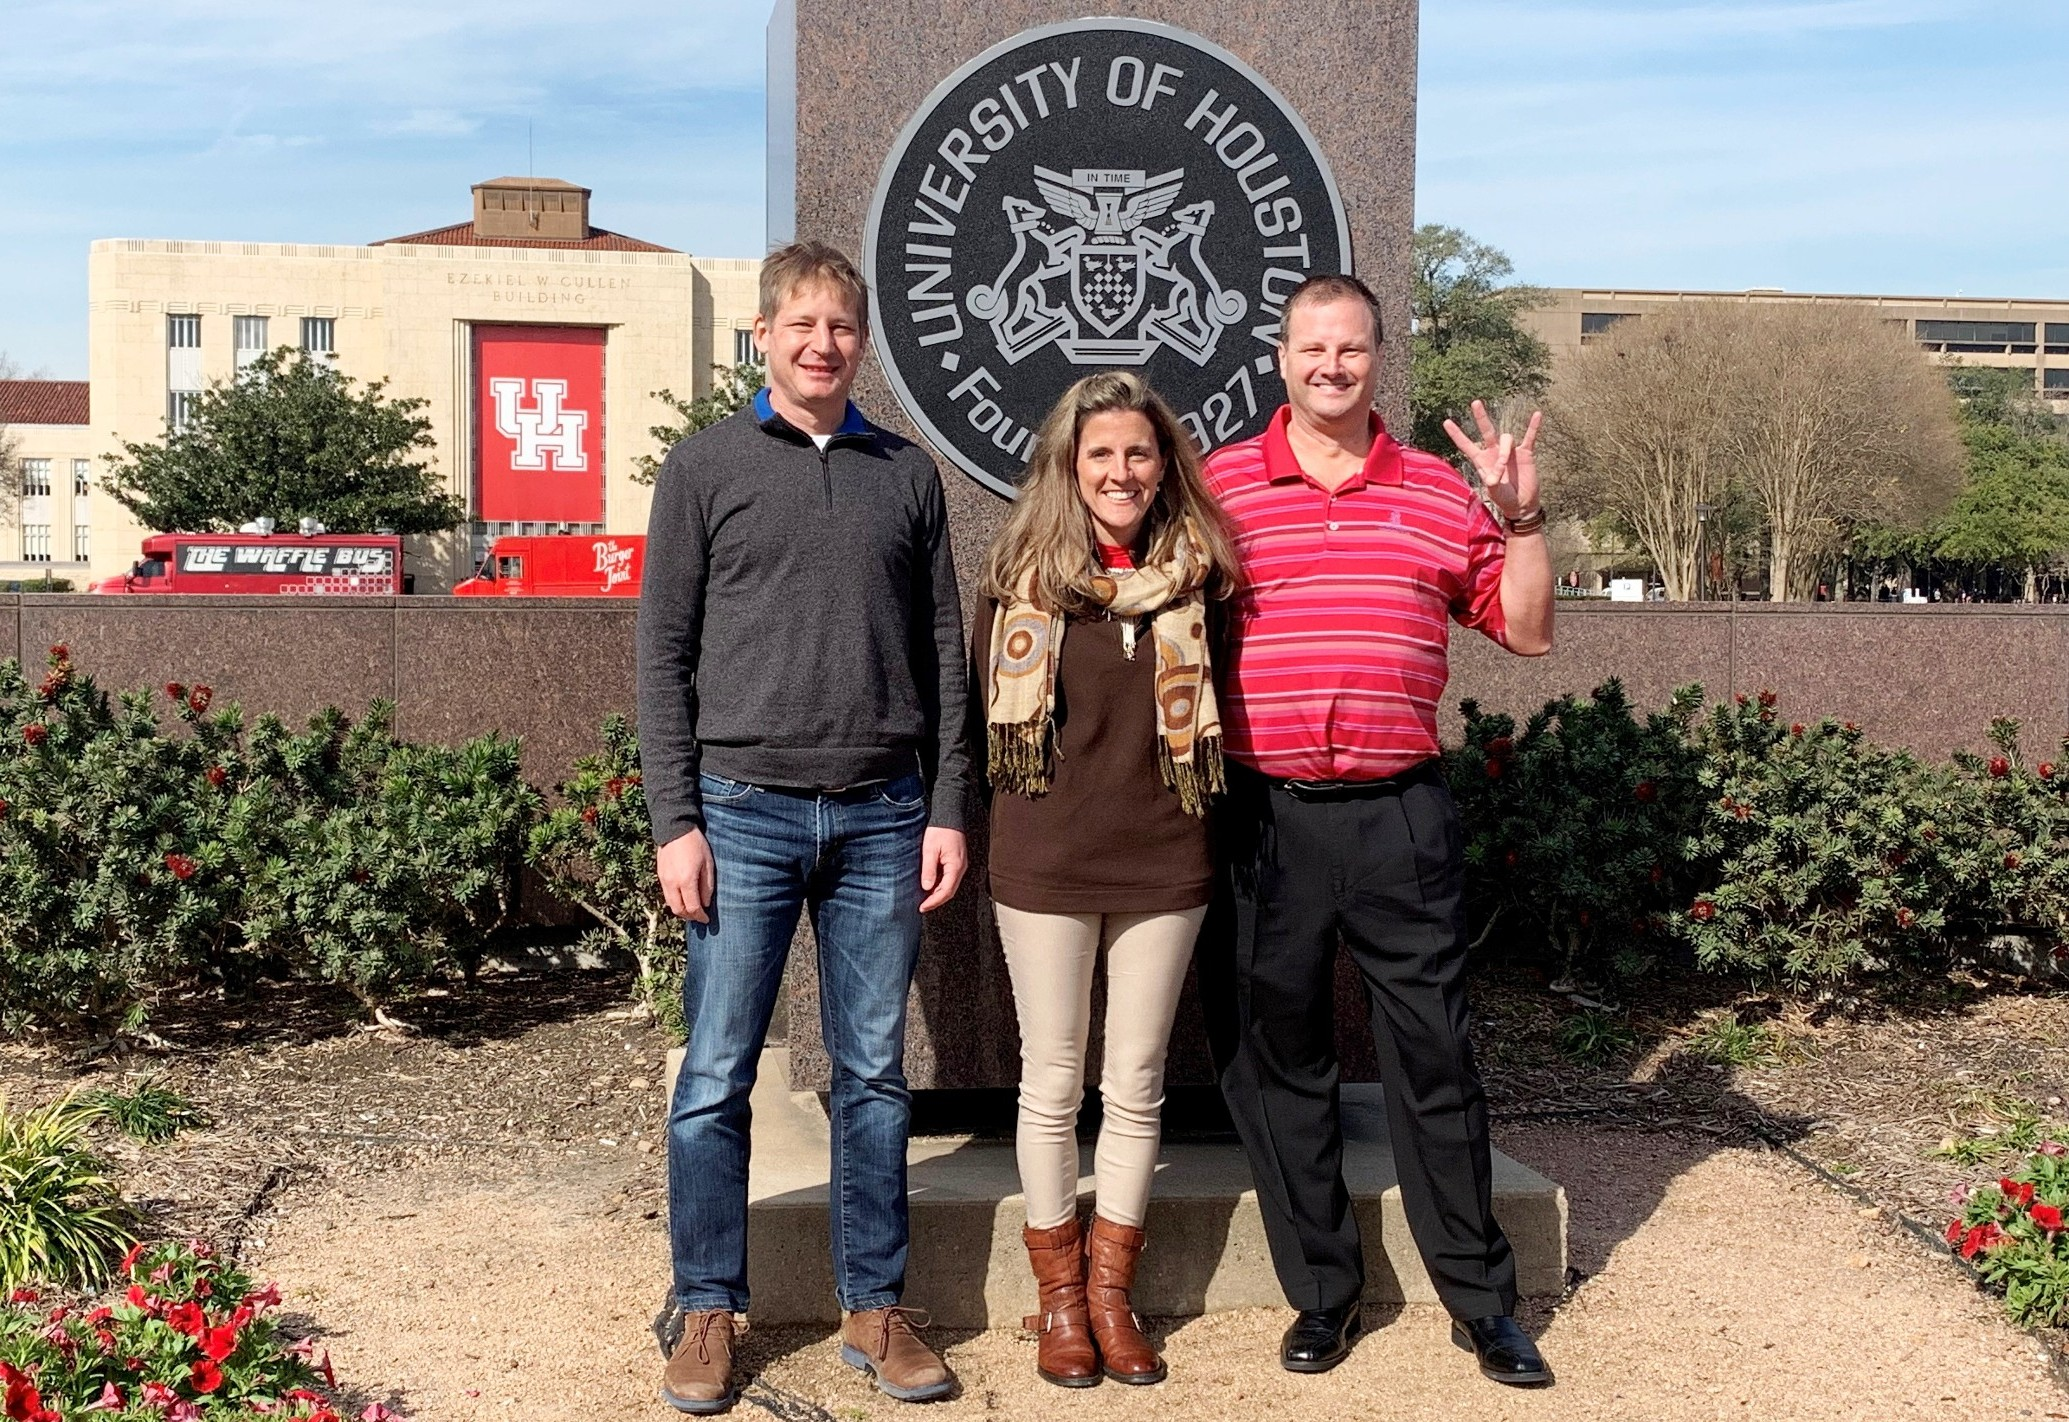 2019-01-25 Dave & Helena Seiver and Tamler Sommers at U of H.jpg